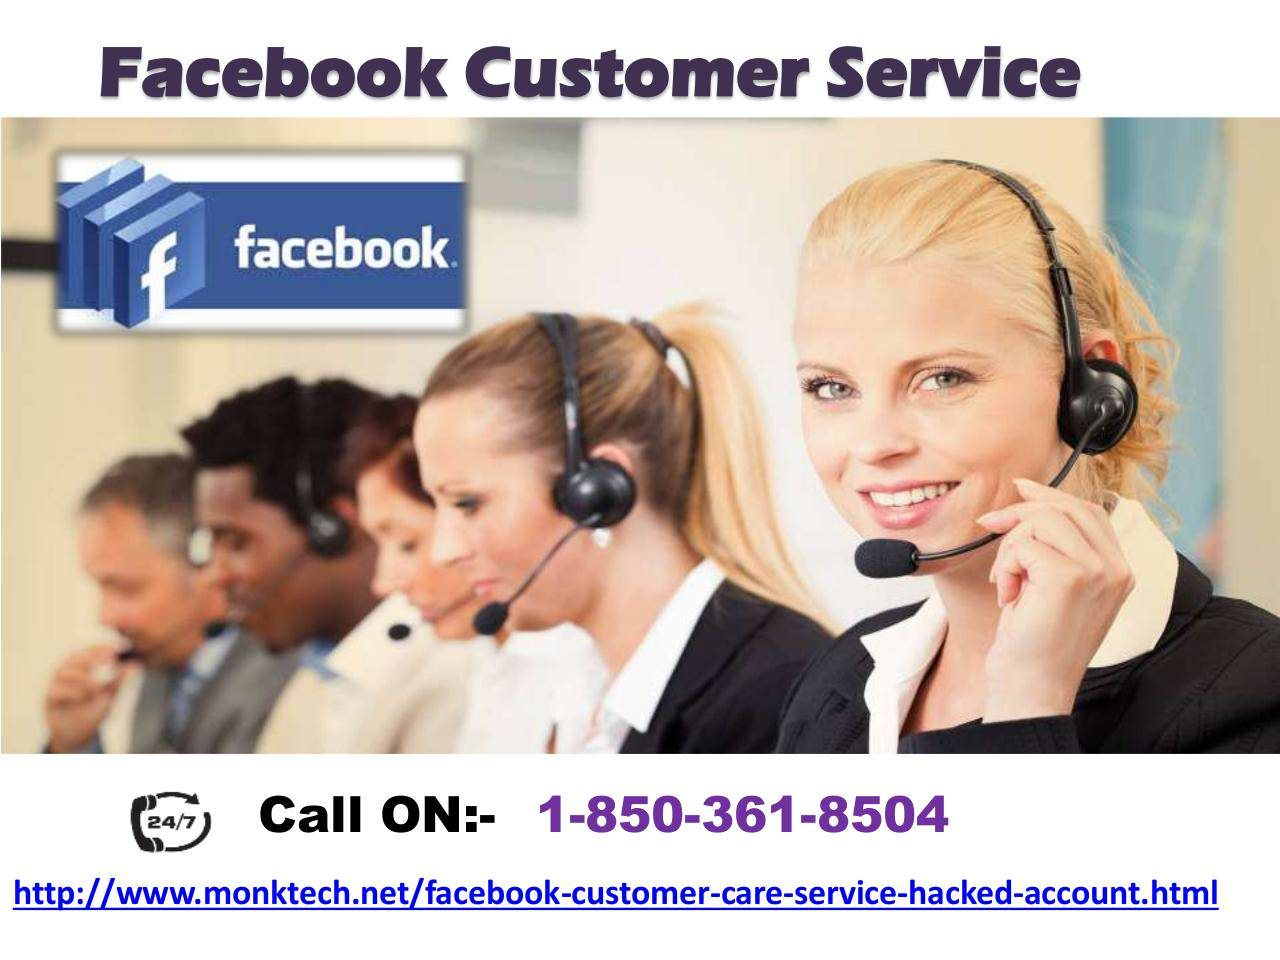 Dial Our Facebook Customer Service Number for Getting the